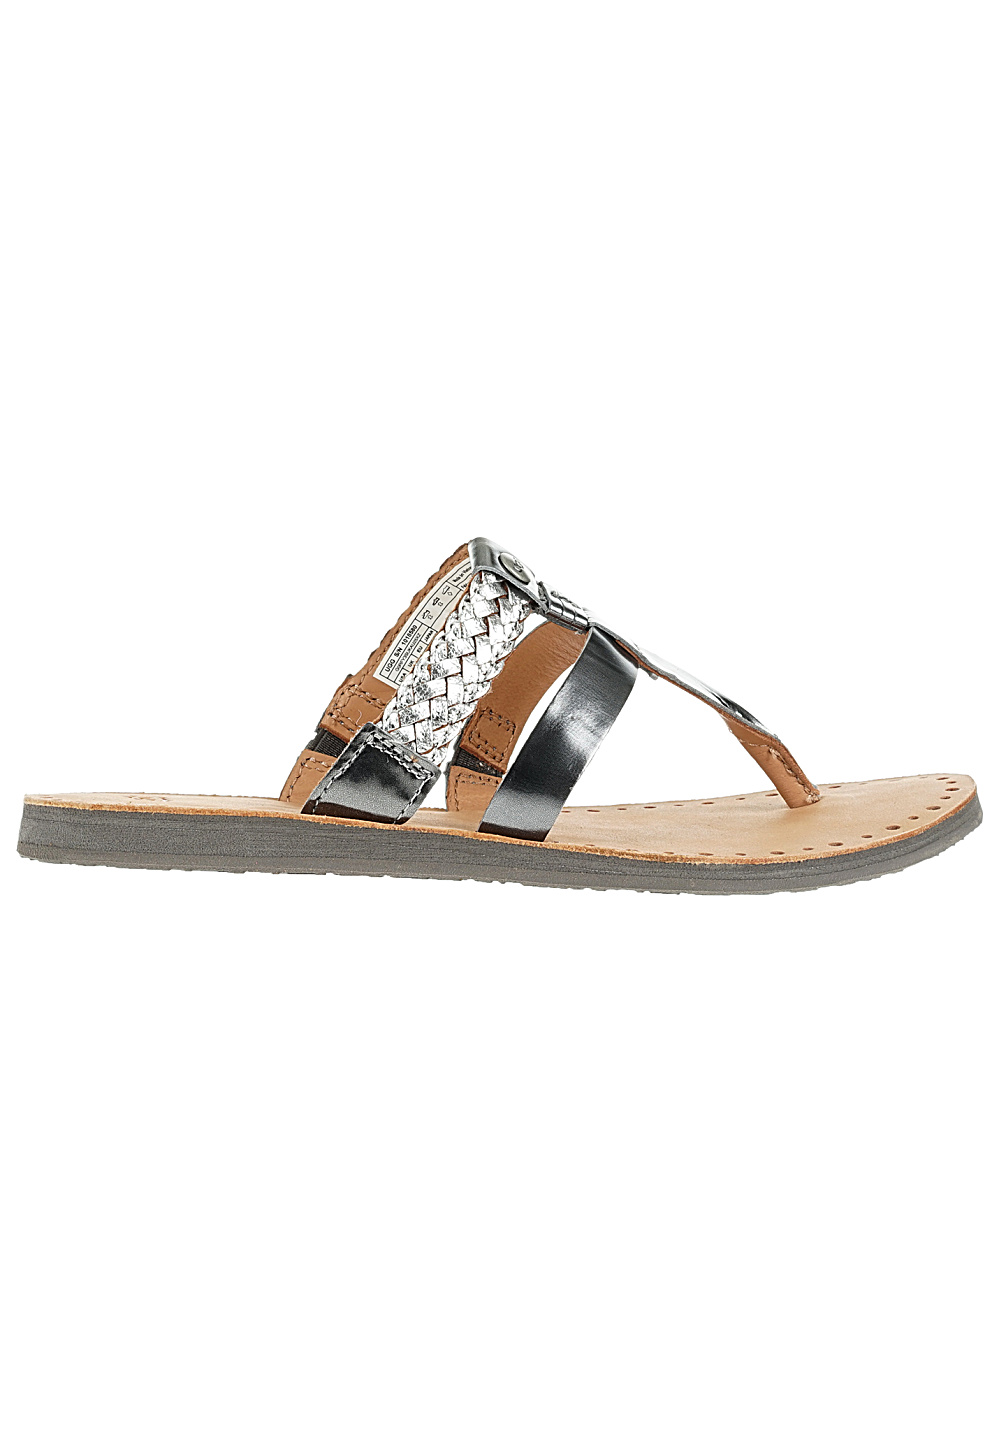 75c3a57d130 UGG Audra - Sandals for Women - Silver